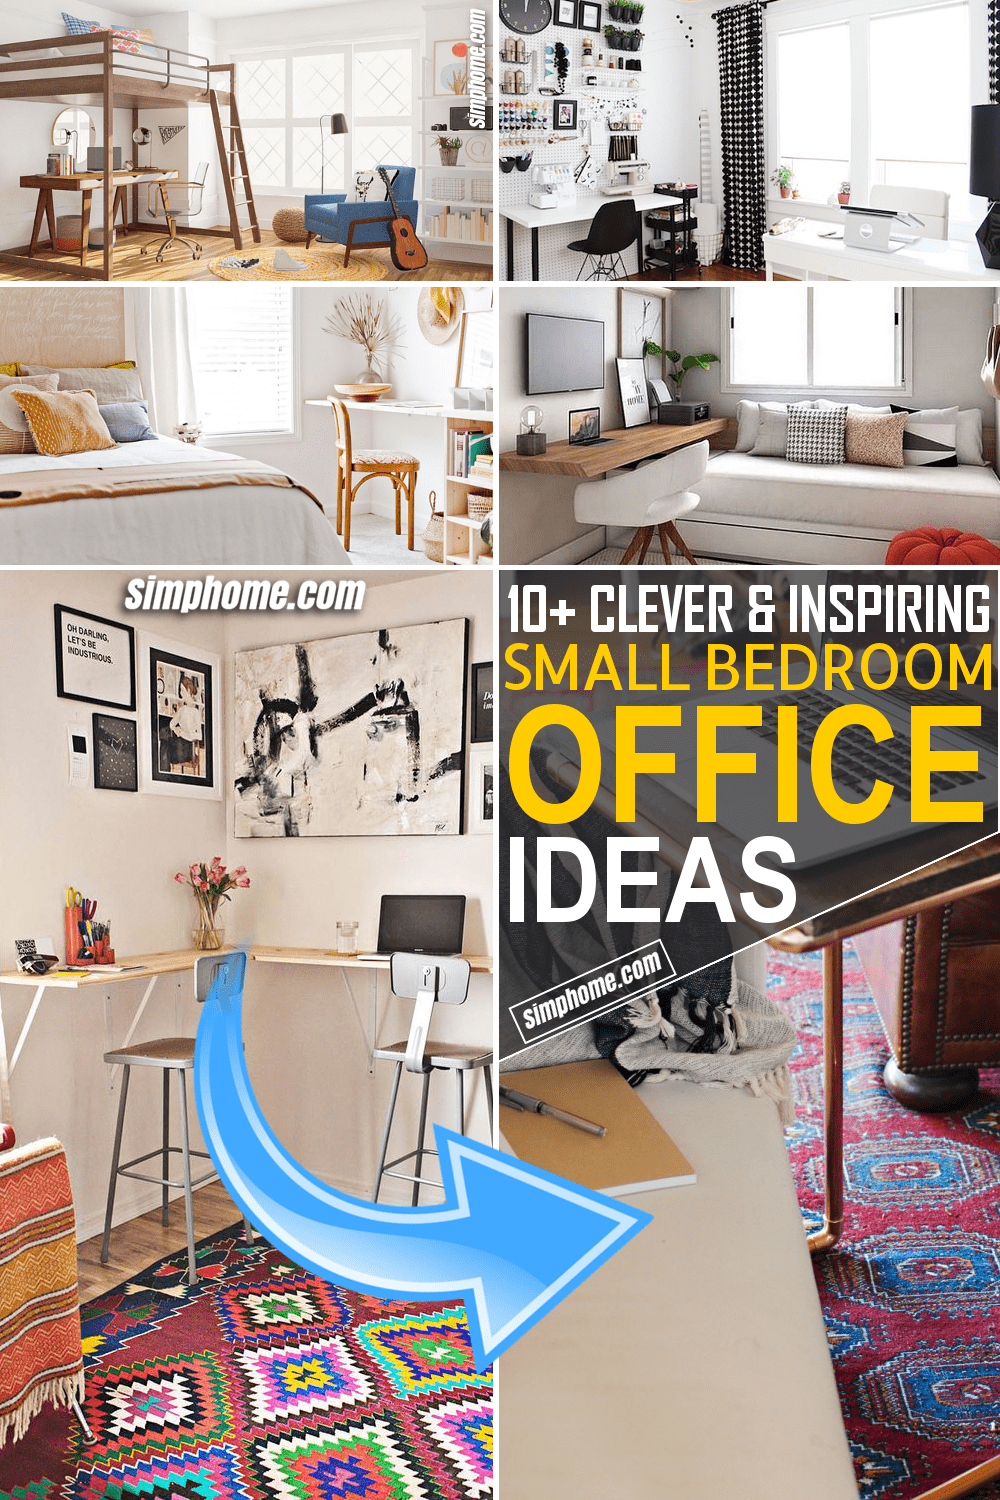 Simphome.com 10 Small Bedroom Office Ideas Featued Pinterest Image